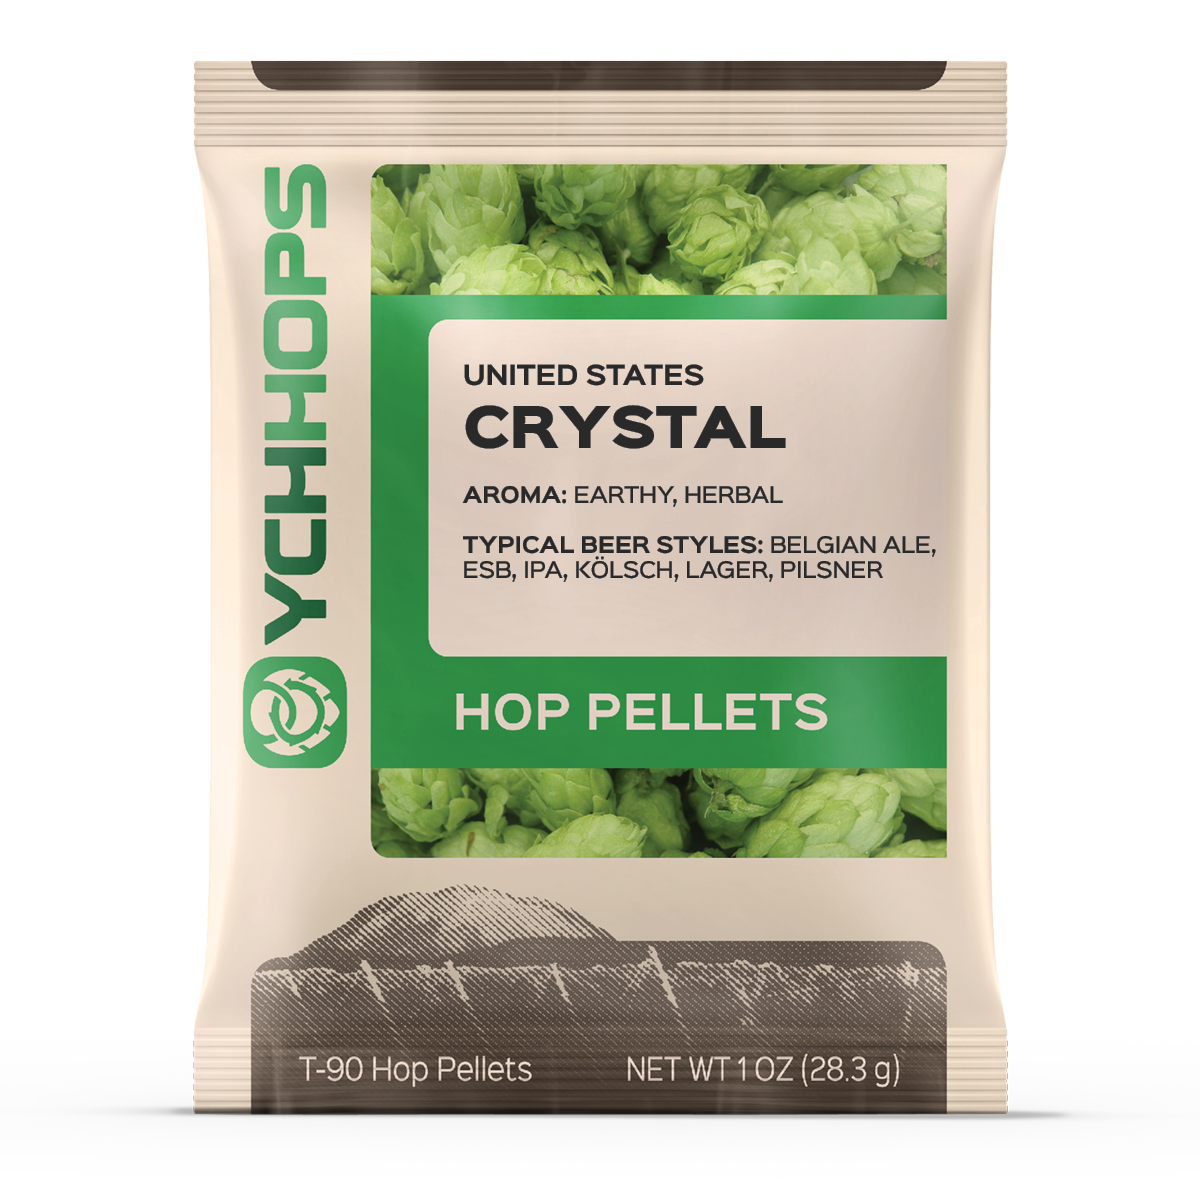 Crystal 1oz Pellets: 3.7% AA (1)